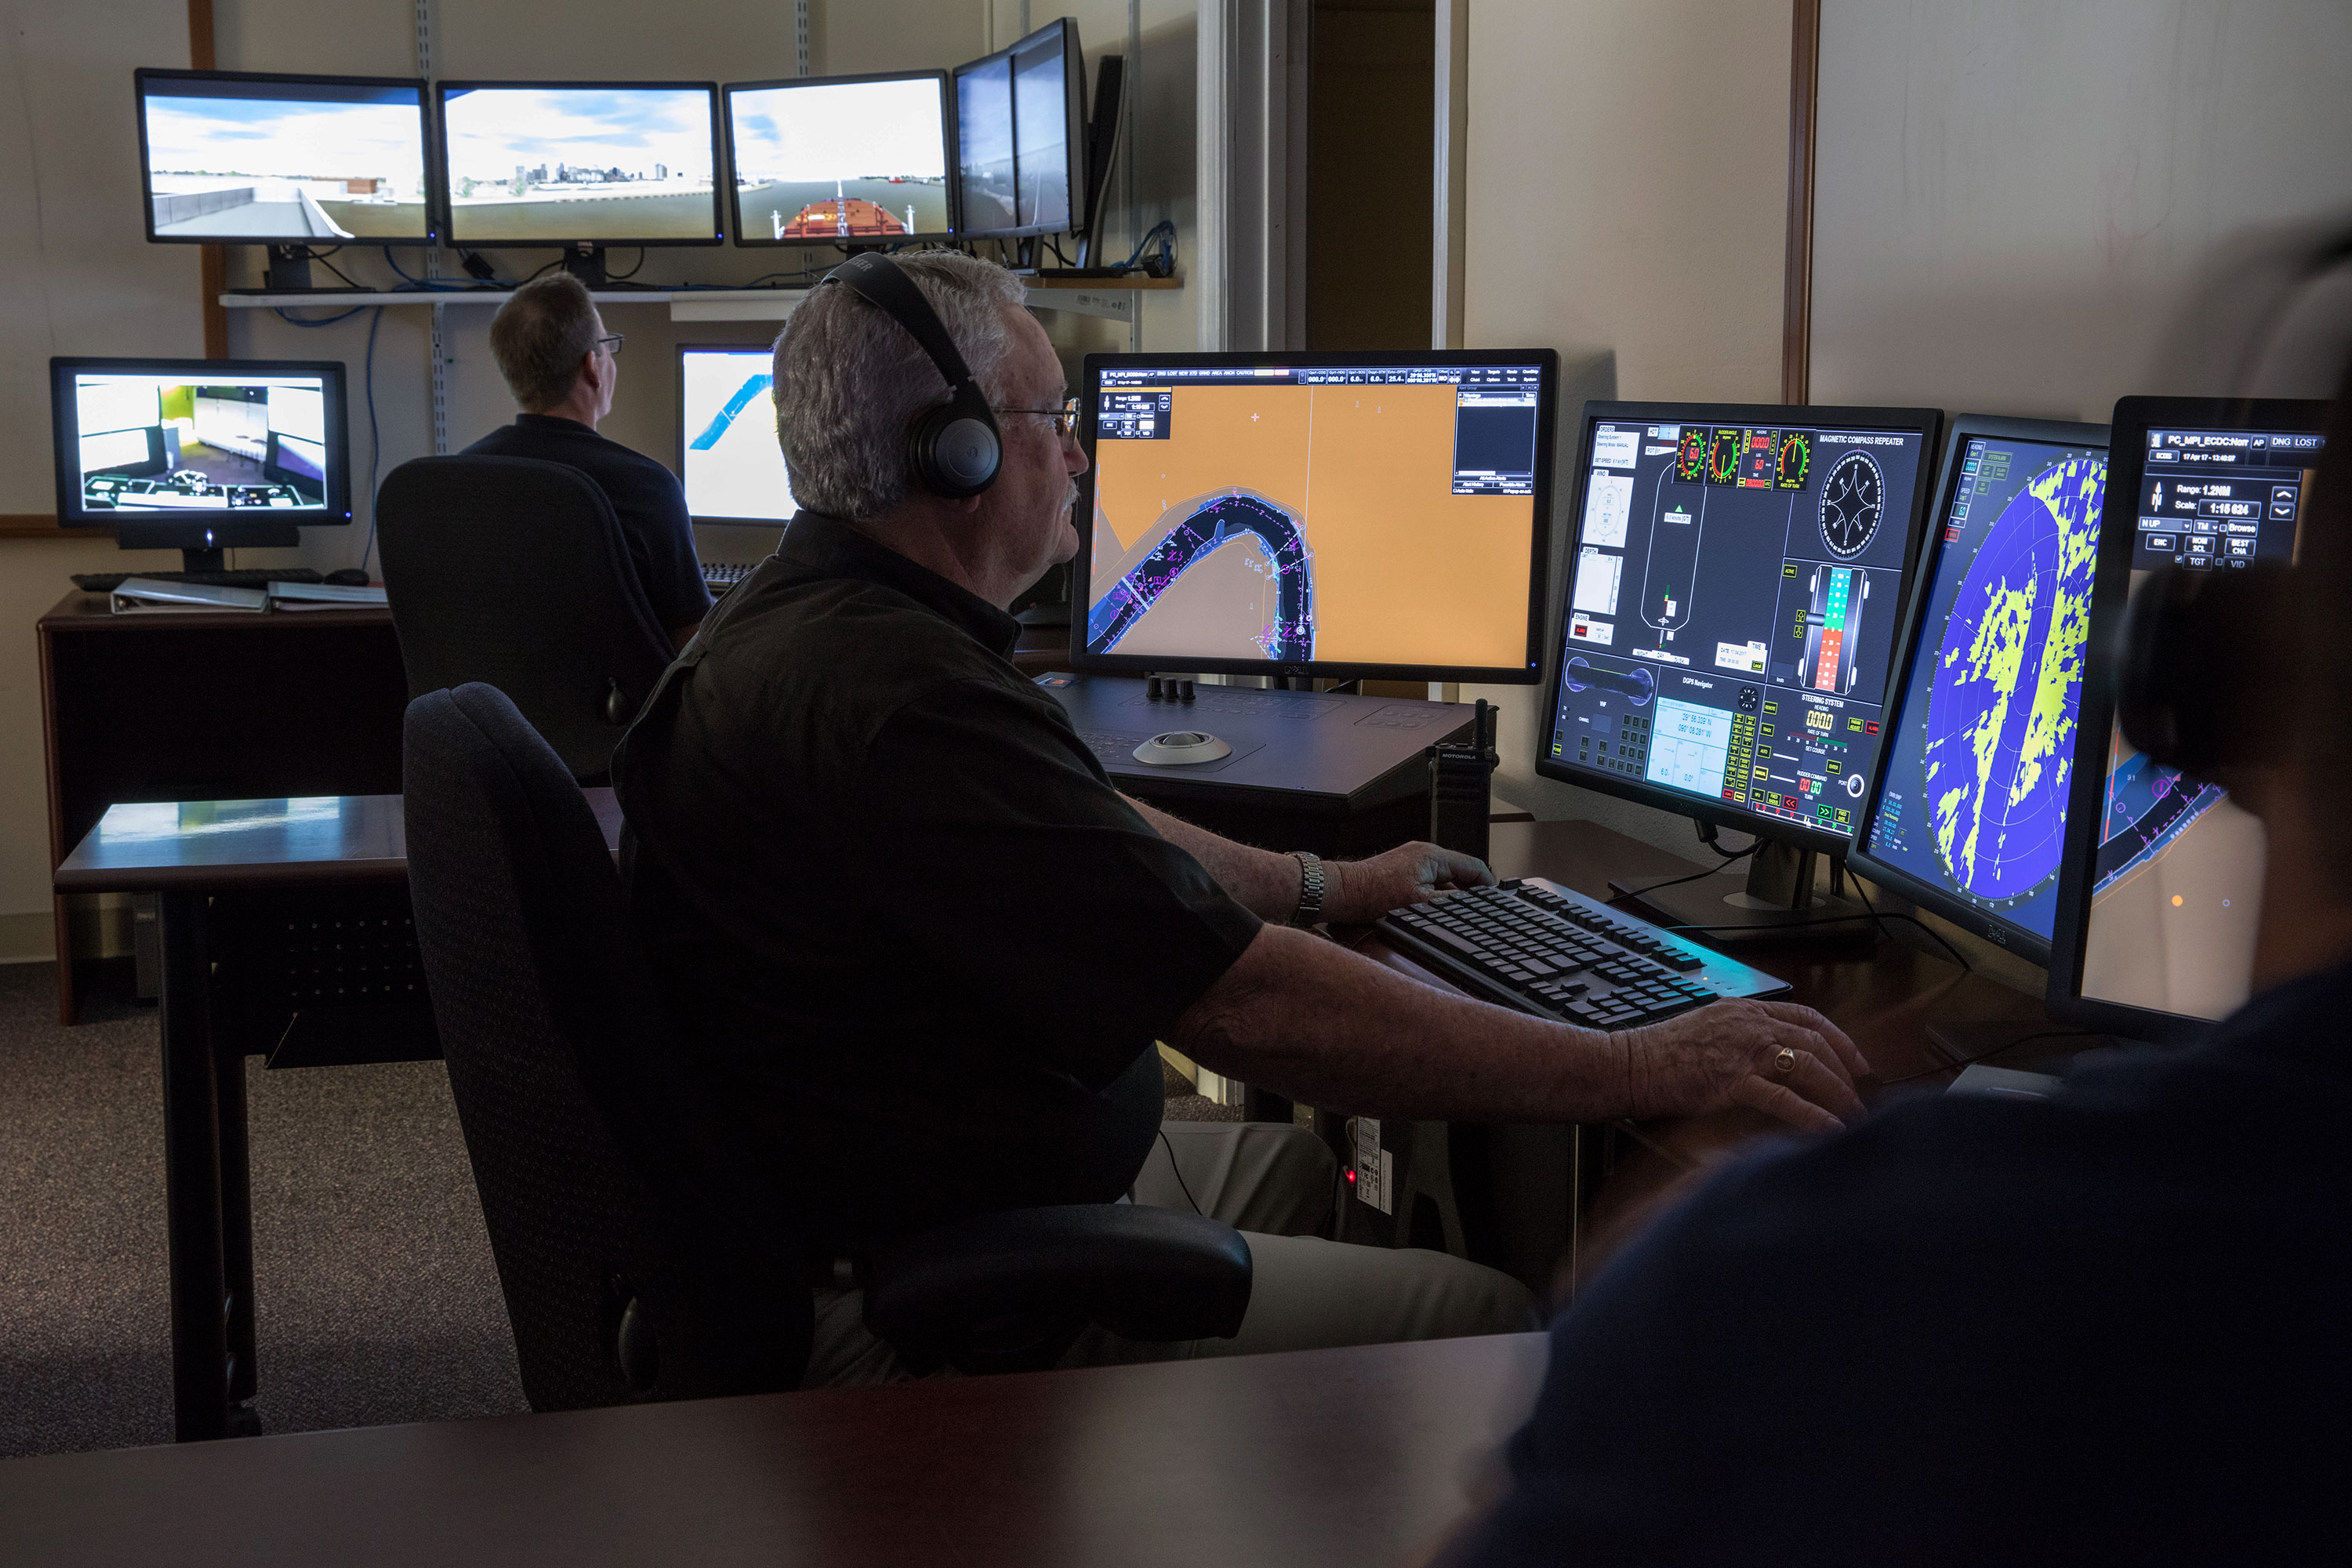 Maritime Ship Simulator Design Consulting Locus, LLC